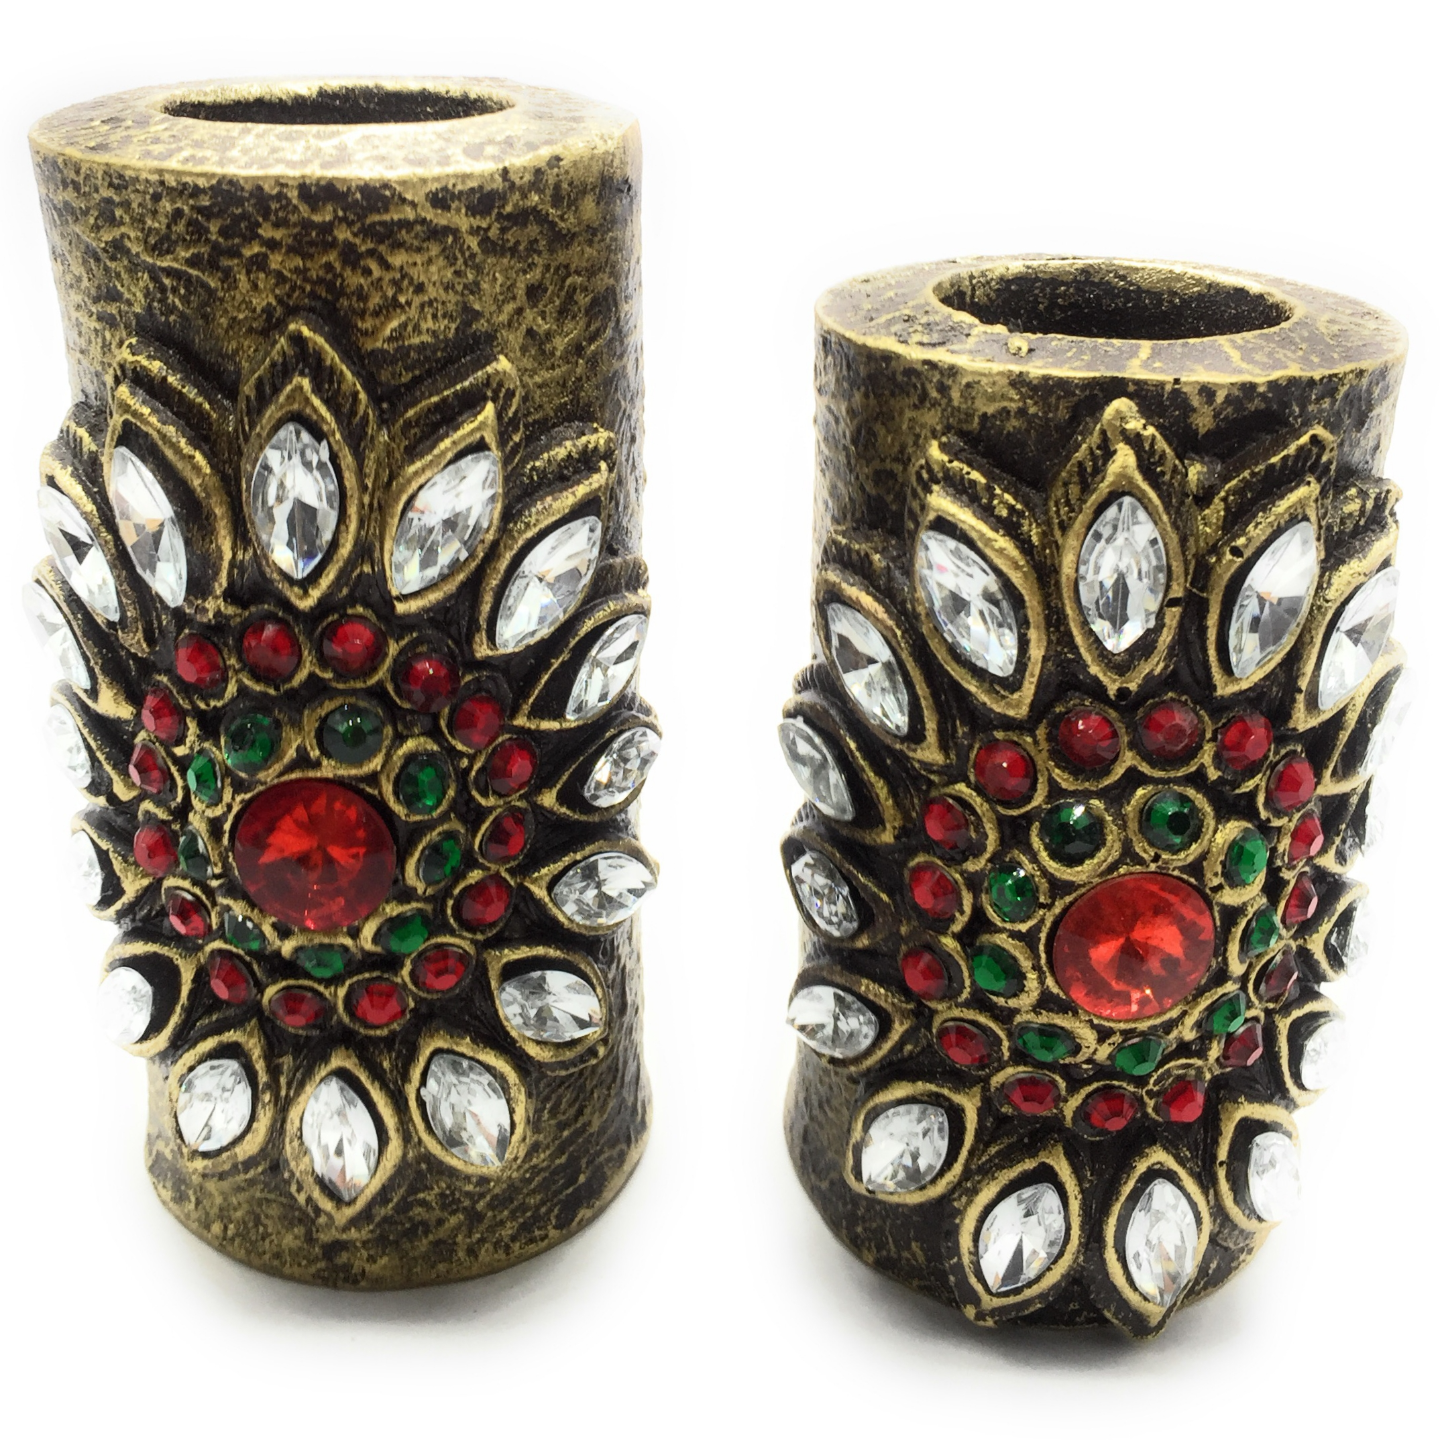 AuraDecor Set of 2 Ethnic Finish Tealight Holder with 2 Tealights Free